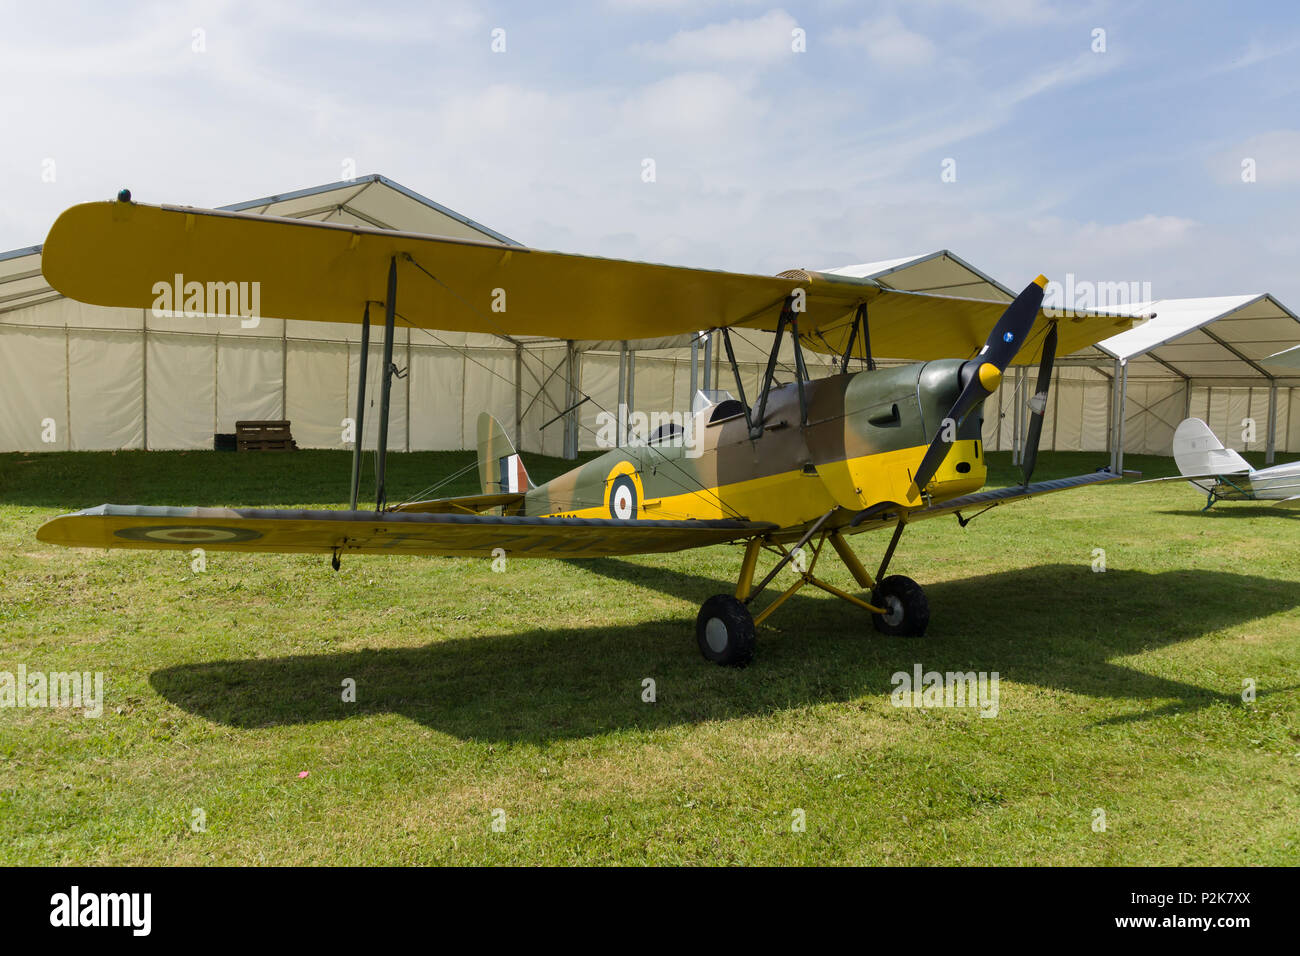 De Havilland Tiger Moth DH82 a two seat propellor driven biplane. Used as a basic training aircraft - Stock Image